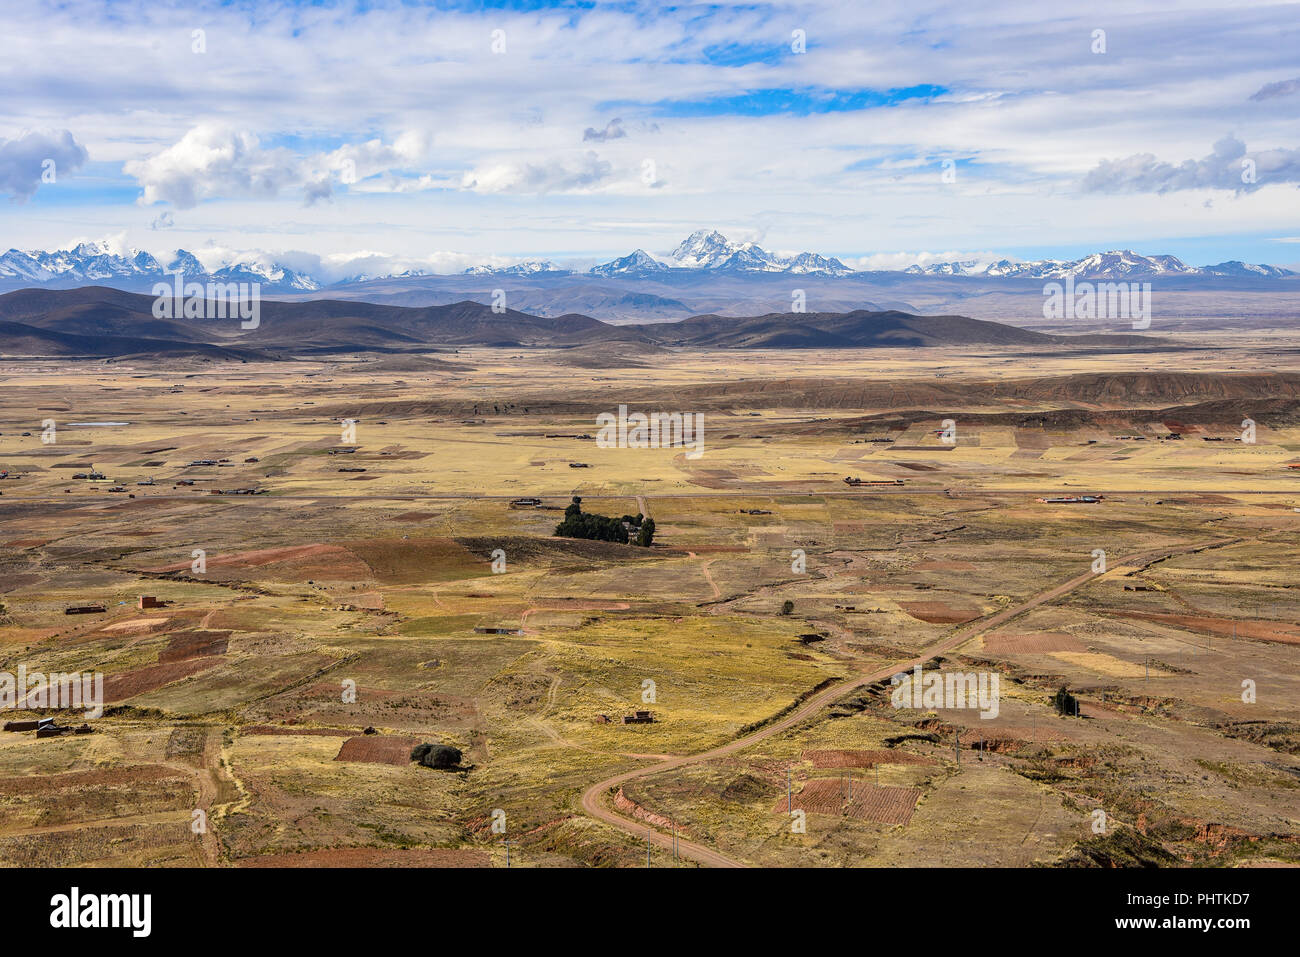 Panoramic view across the altiplano and the mountains of the Cordillera Real, near La Paz, Bolivia - Stock Image